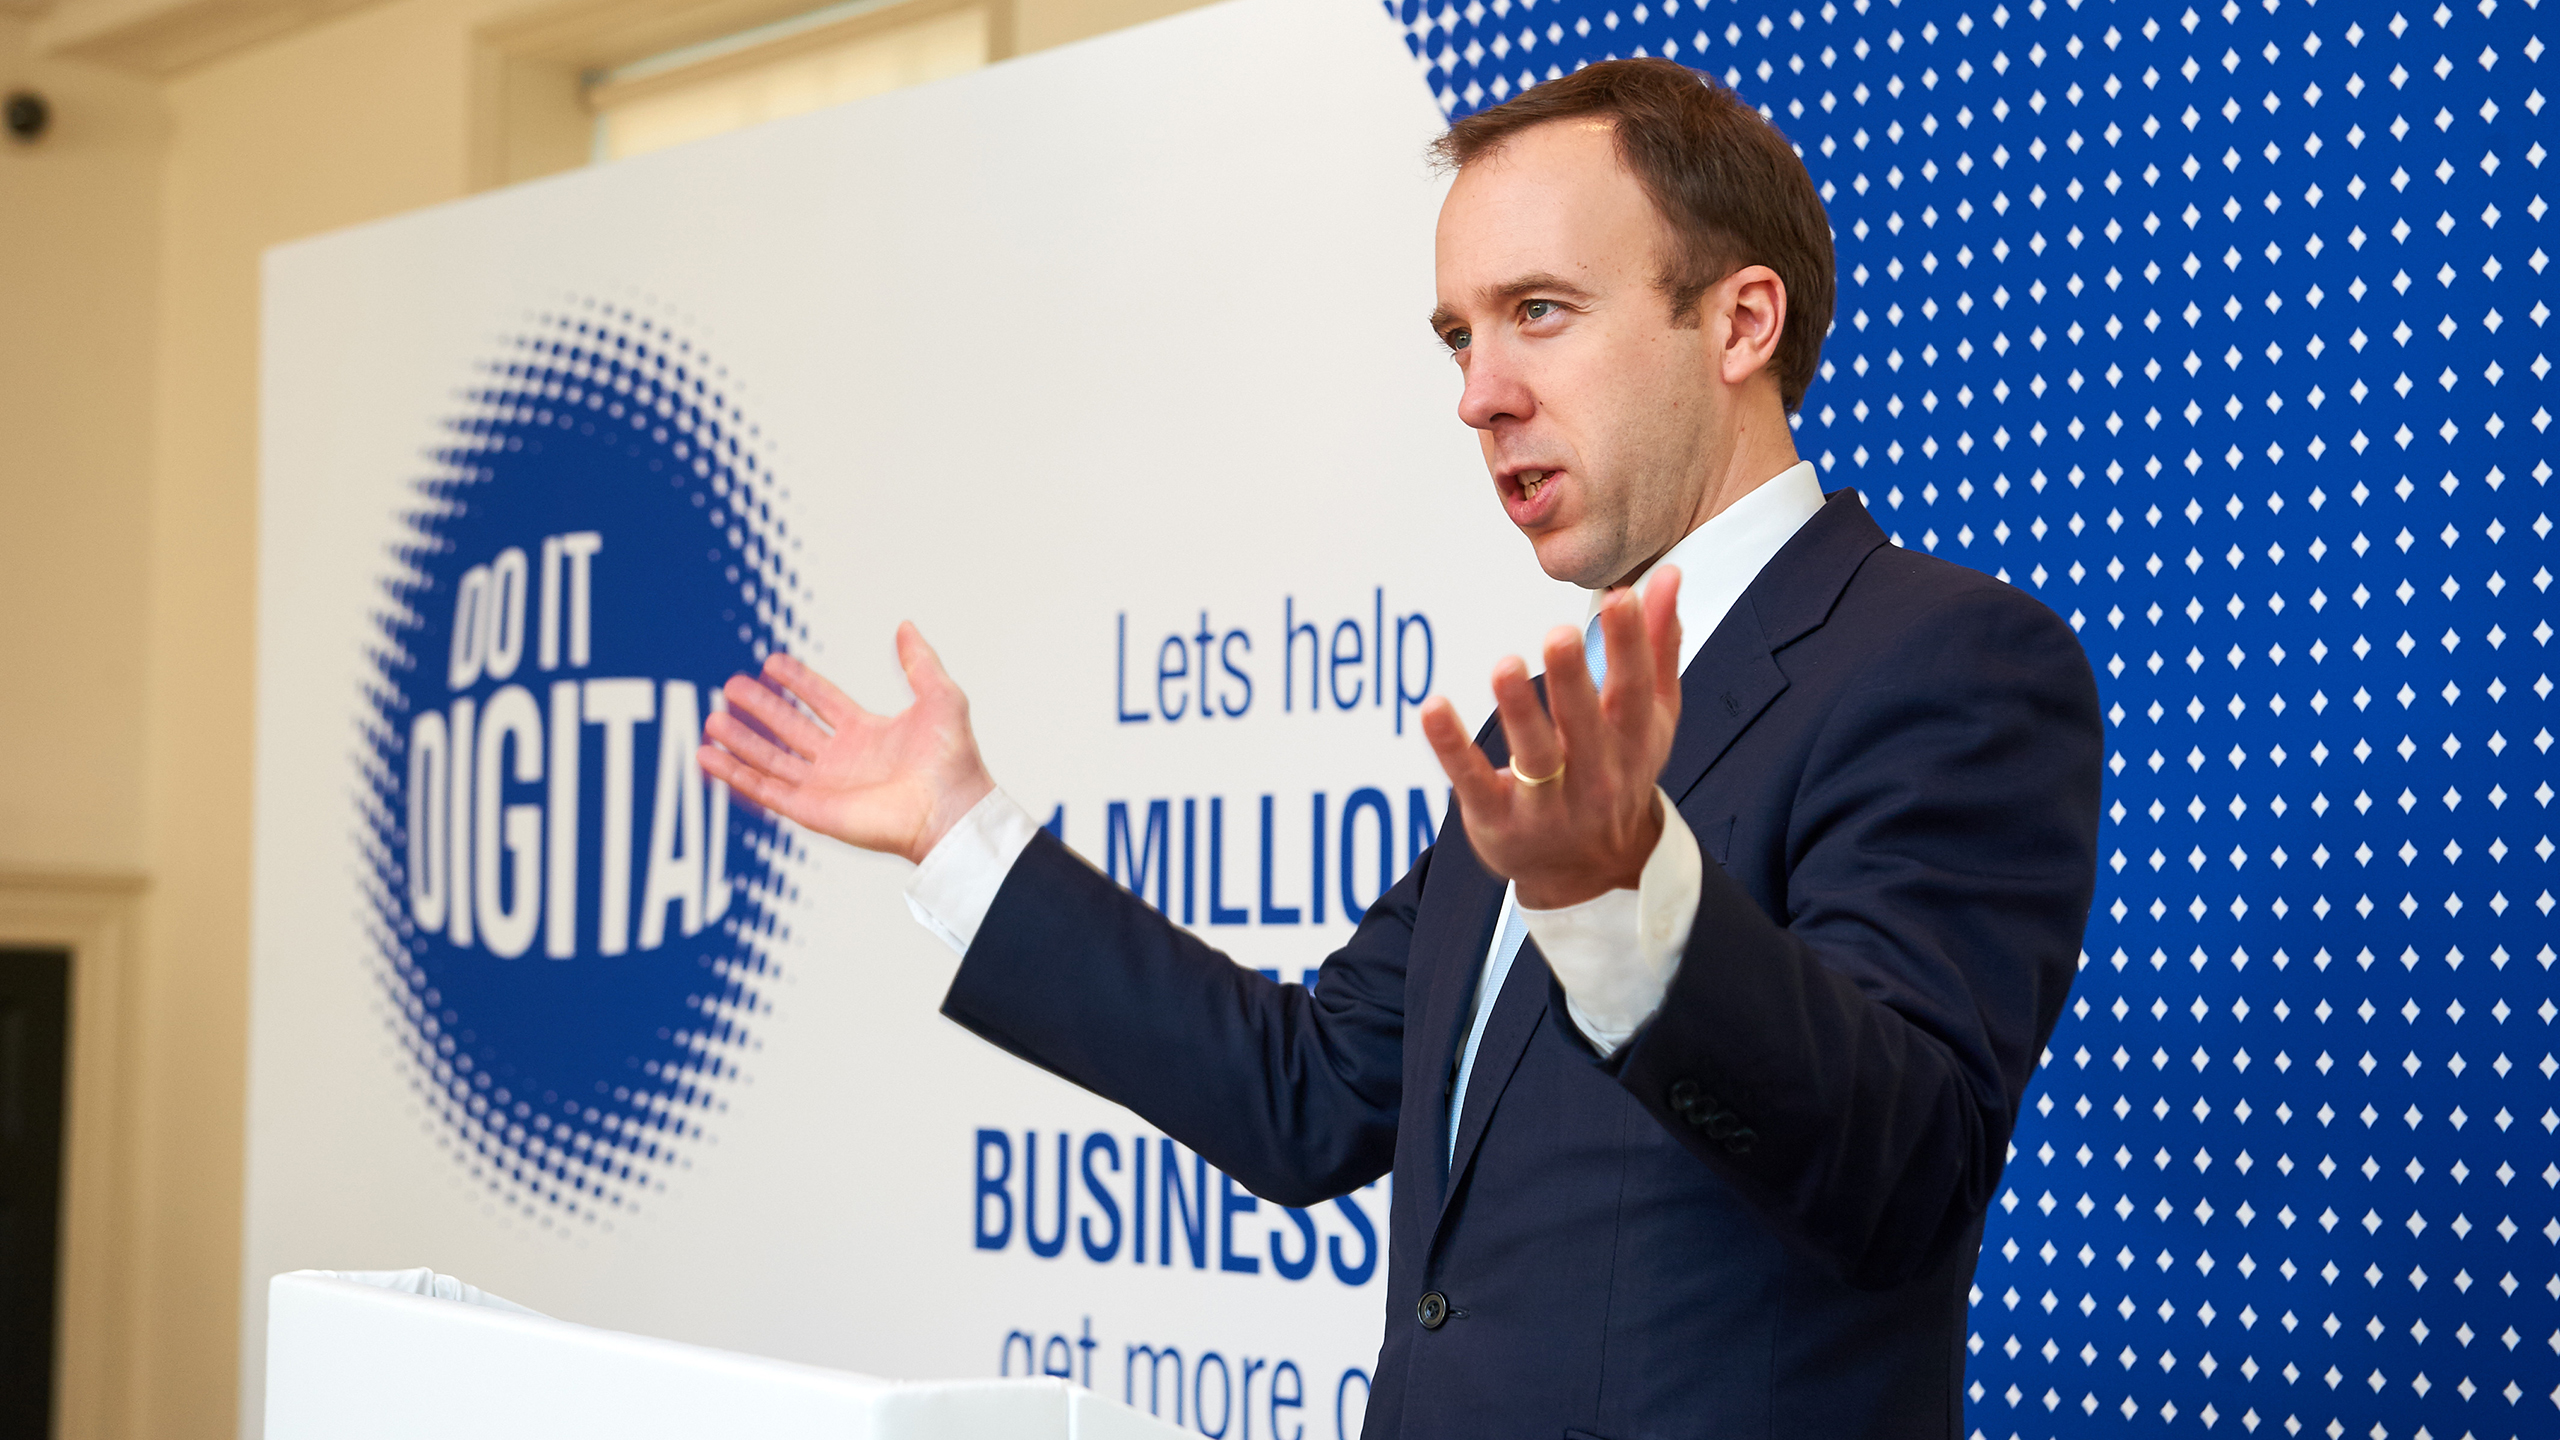 Matt Hancock MP speaking to the audience